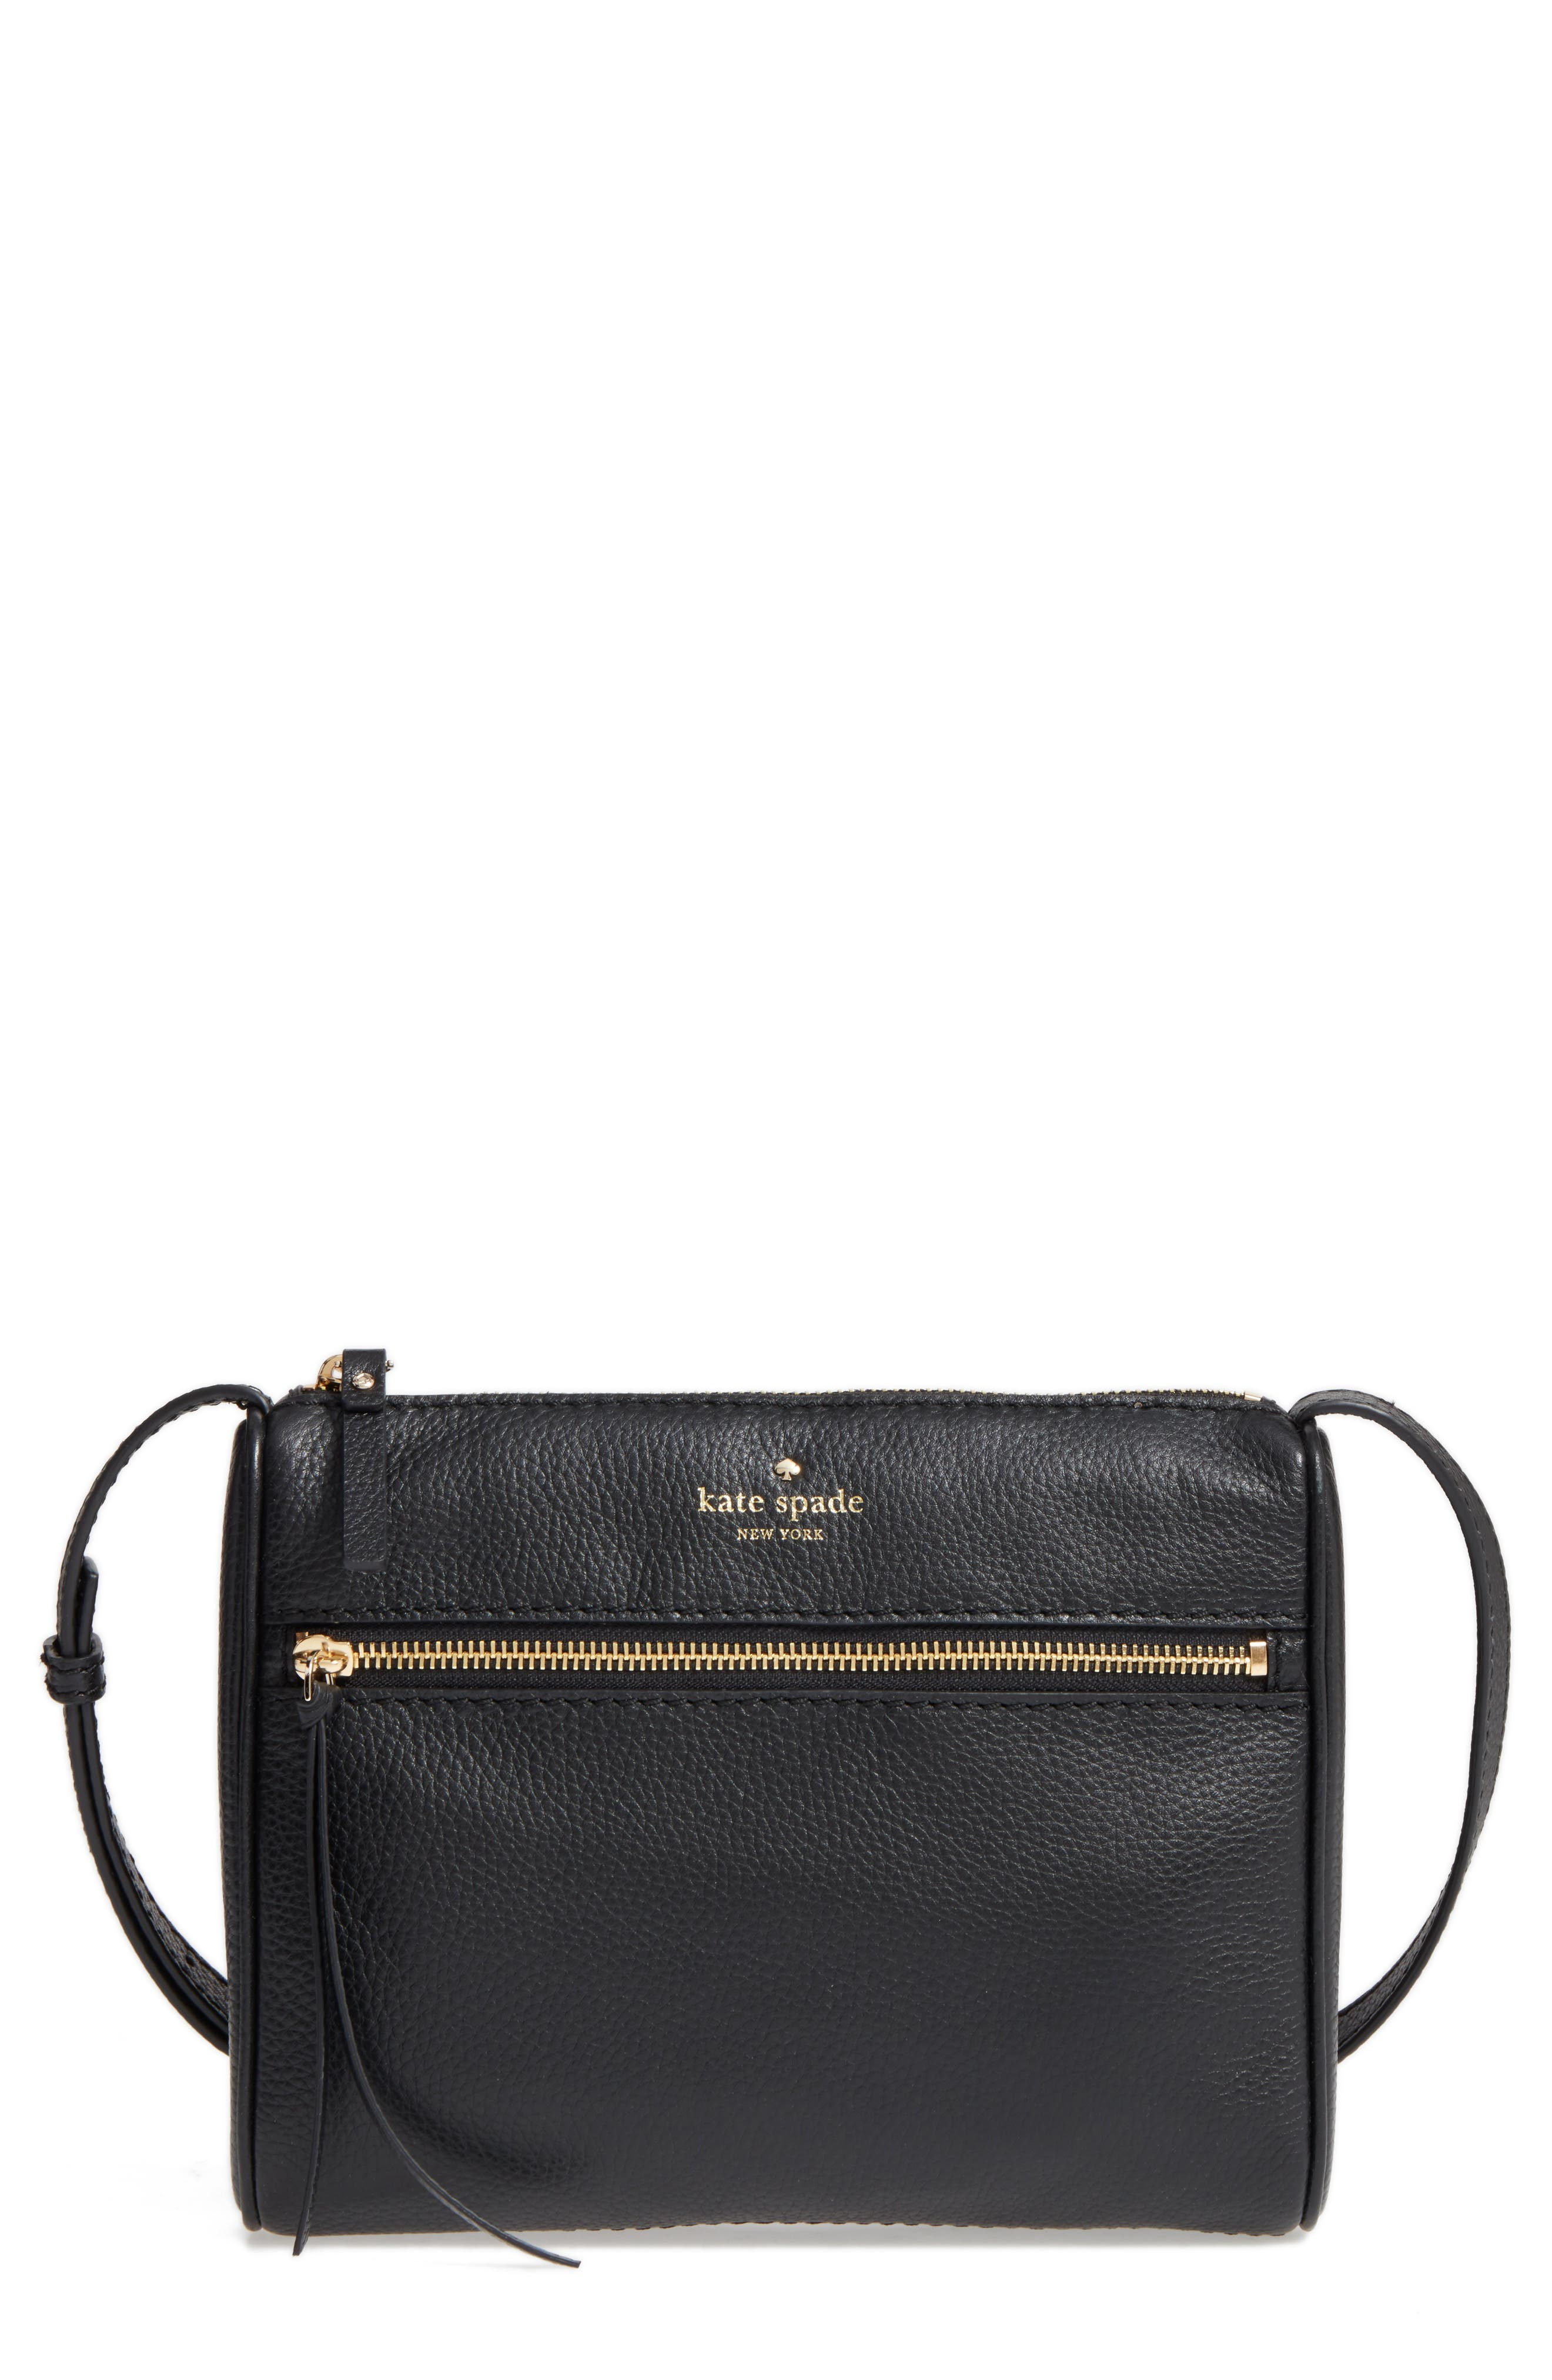 kate spade new york young lane - cayli leather crossbody bag